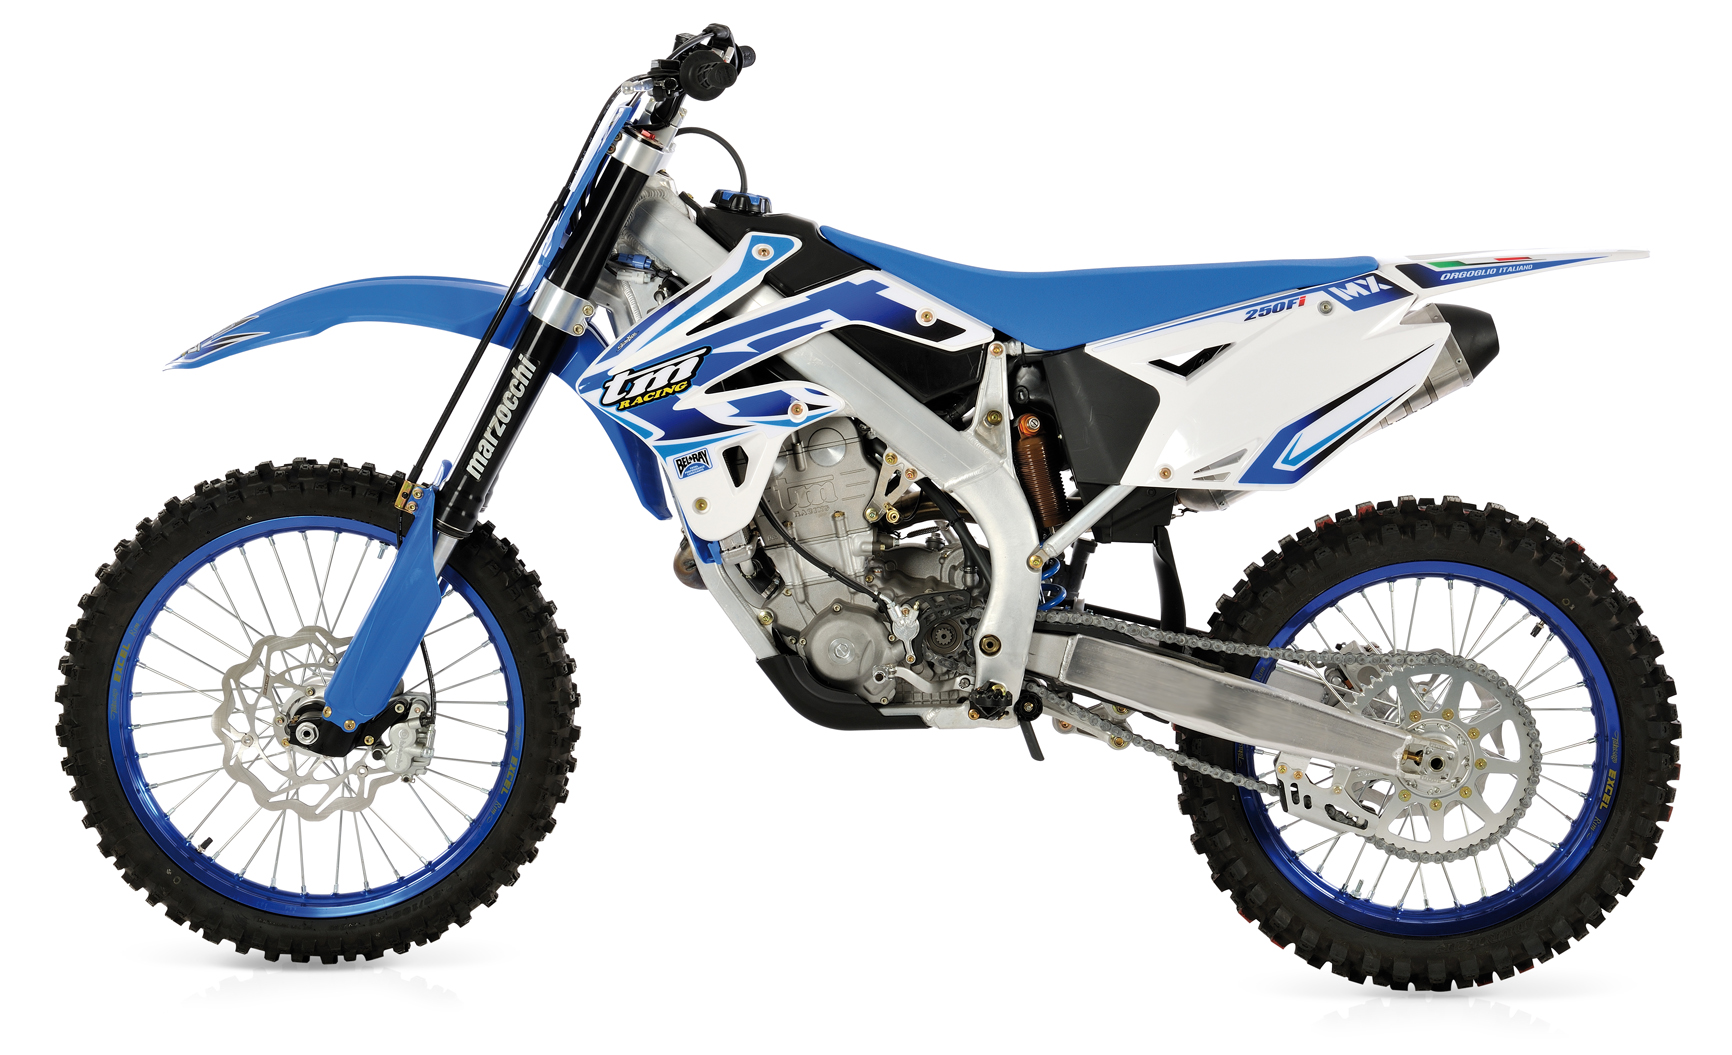 TM racing MX 250 Fi 2010 #1